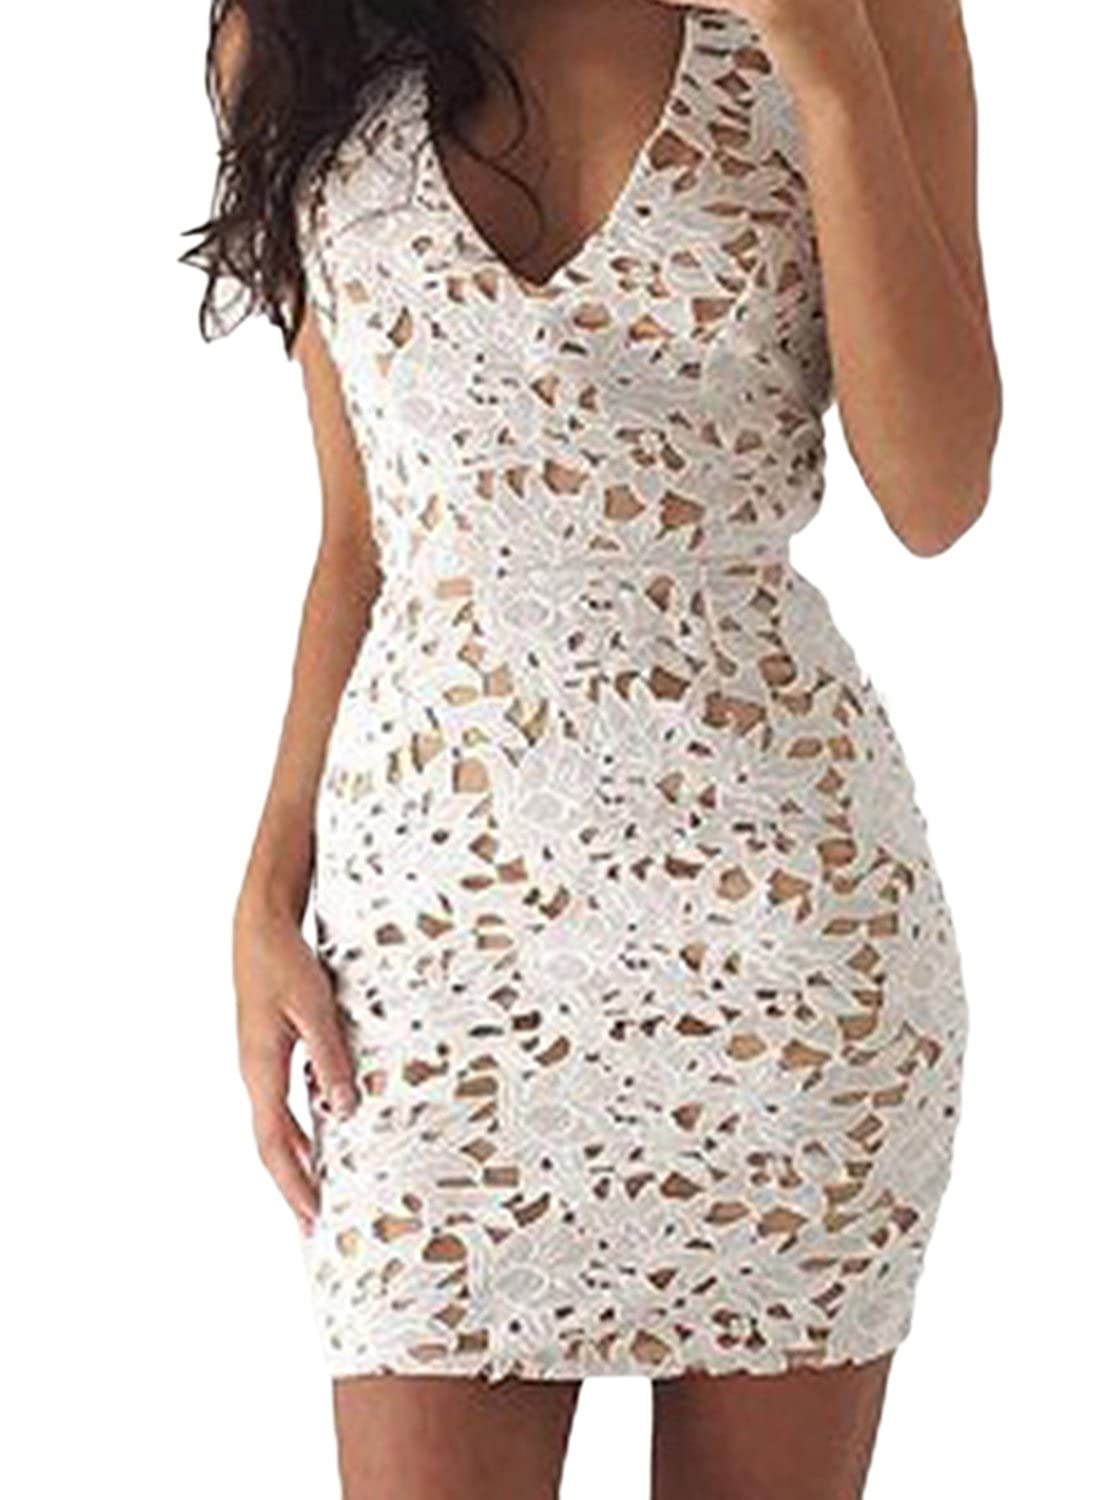 Rsuma Womens V Neck Sleeveless Lace Bodycon Mini Dress at Amazon Womens Clothing store: